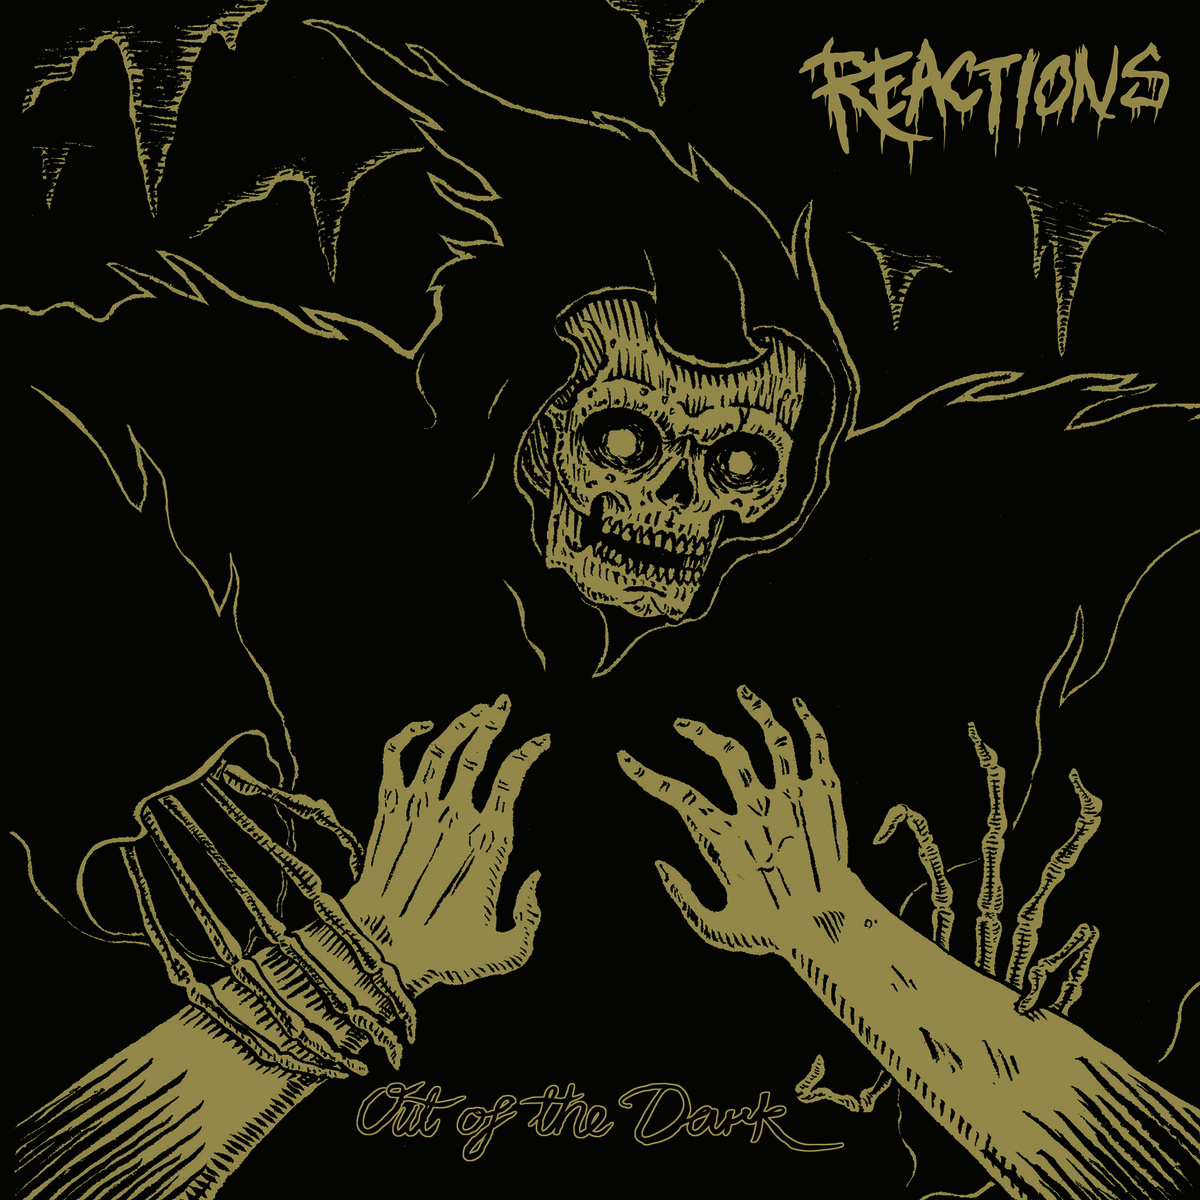 Reactions – Out of the Dark